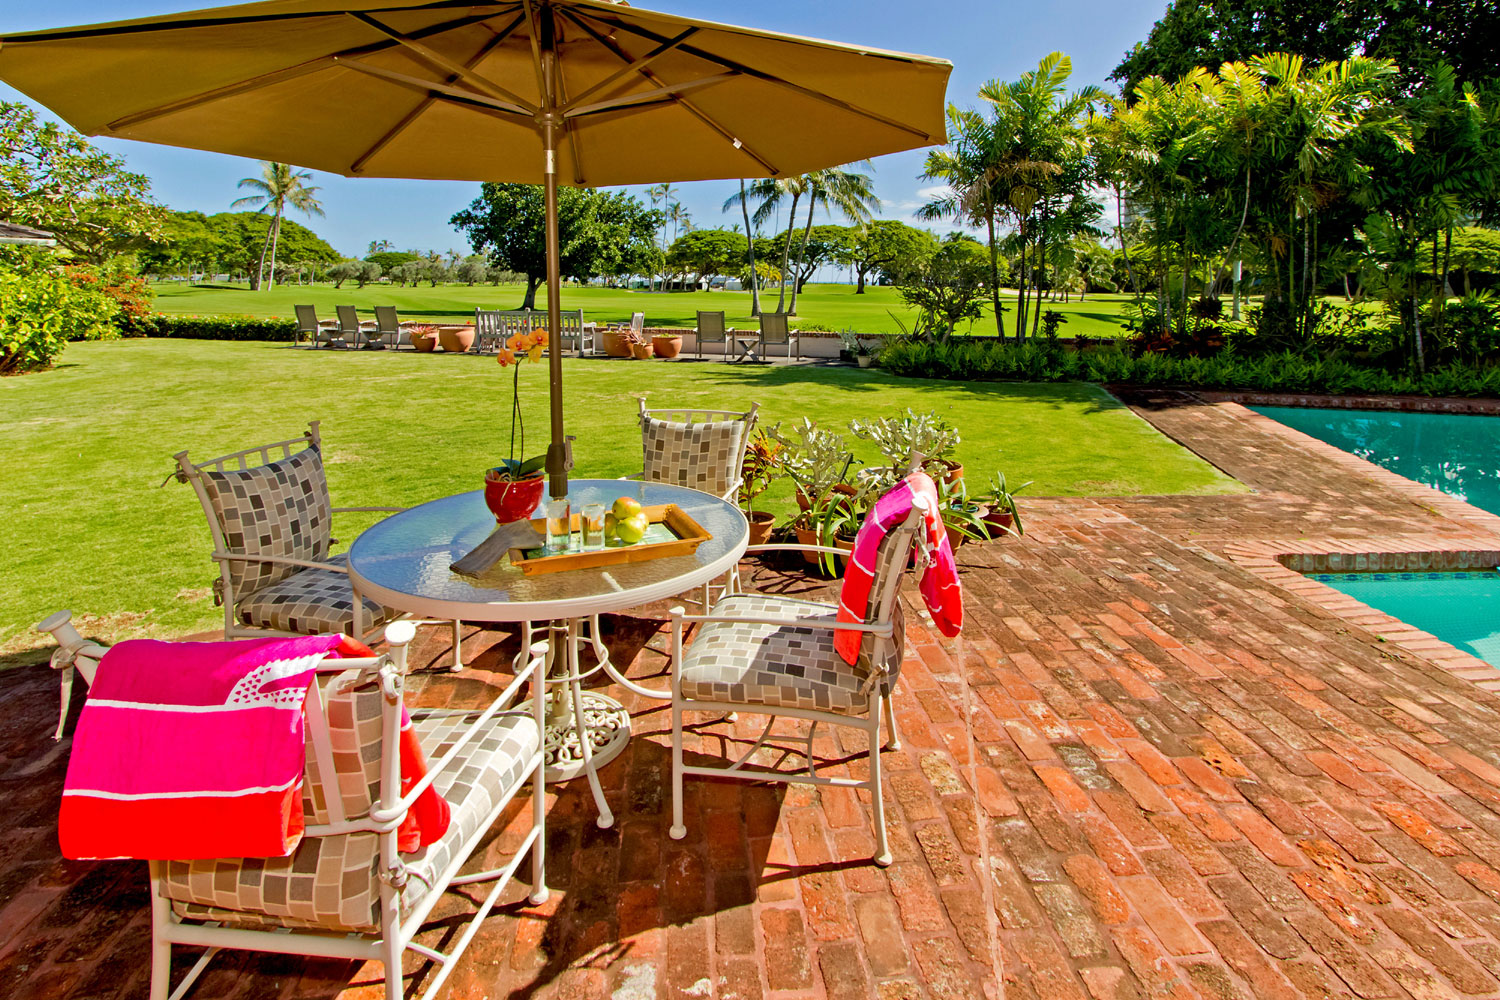 This incredible home is located on the ninth fairway of the Waialae Golf Course, at the Waialae Country Club, near Honolulu. Established in 1927, the challenging par-70 course hosts the SONY Open in Hawaii; bordering the Pacific Ocean, it offers an unrivaled golf experience.